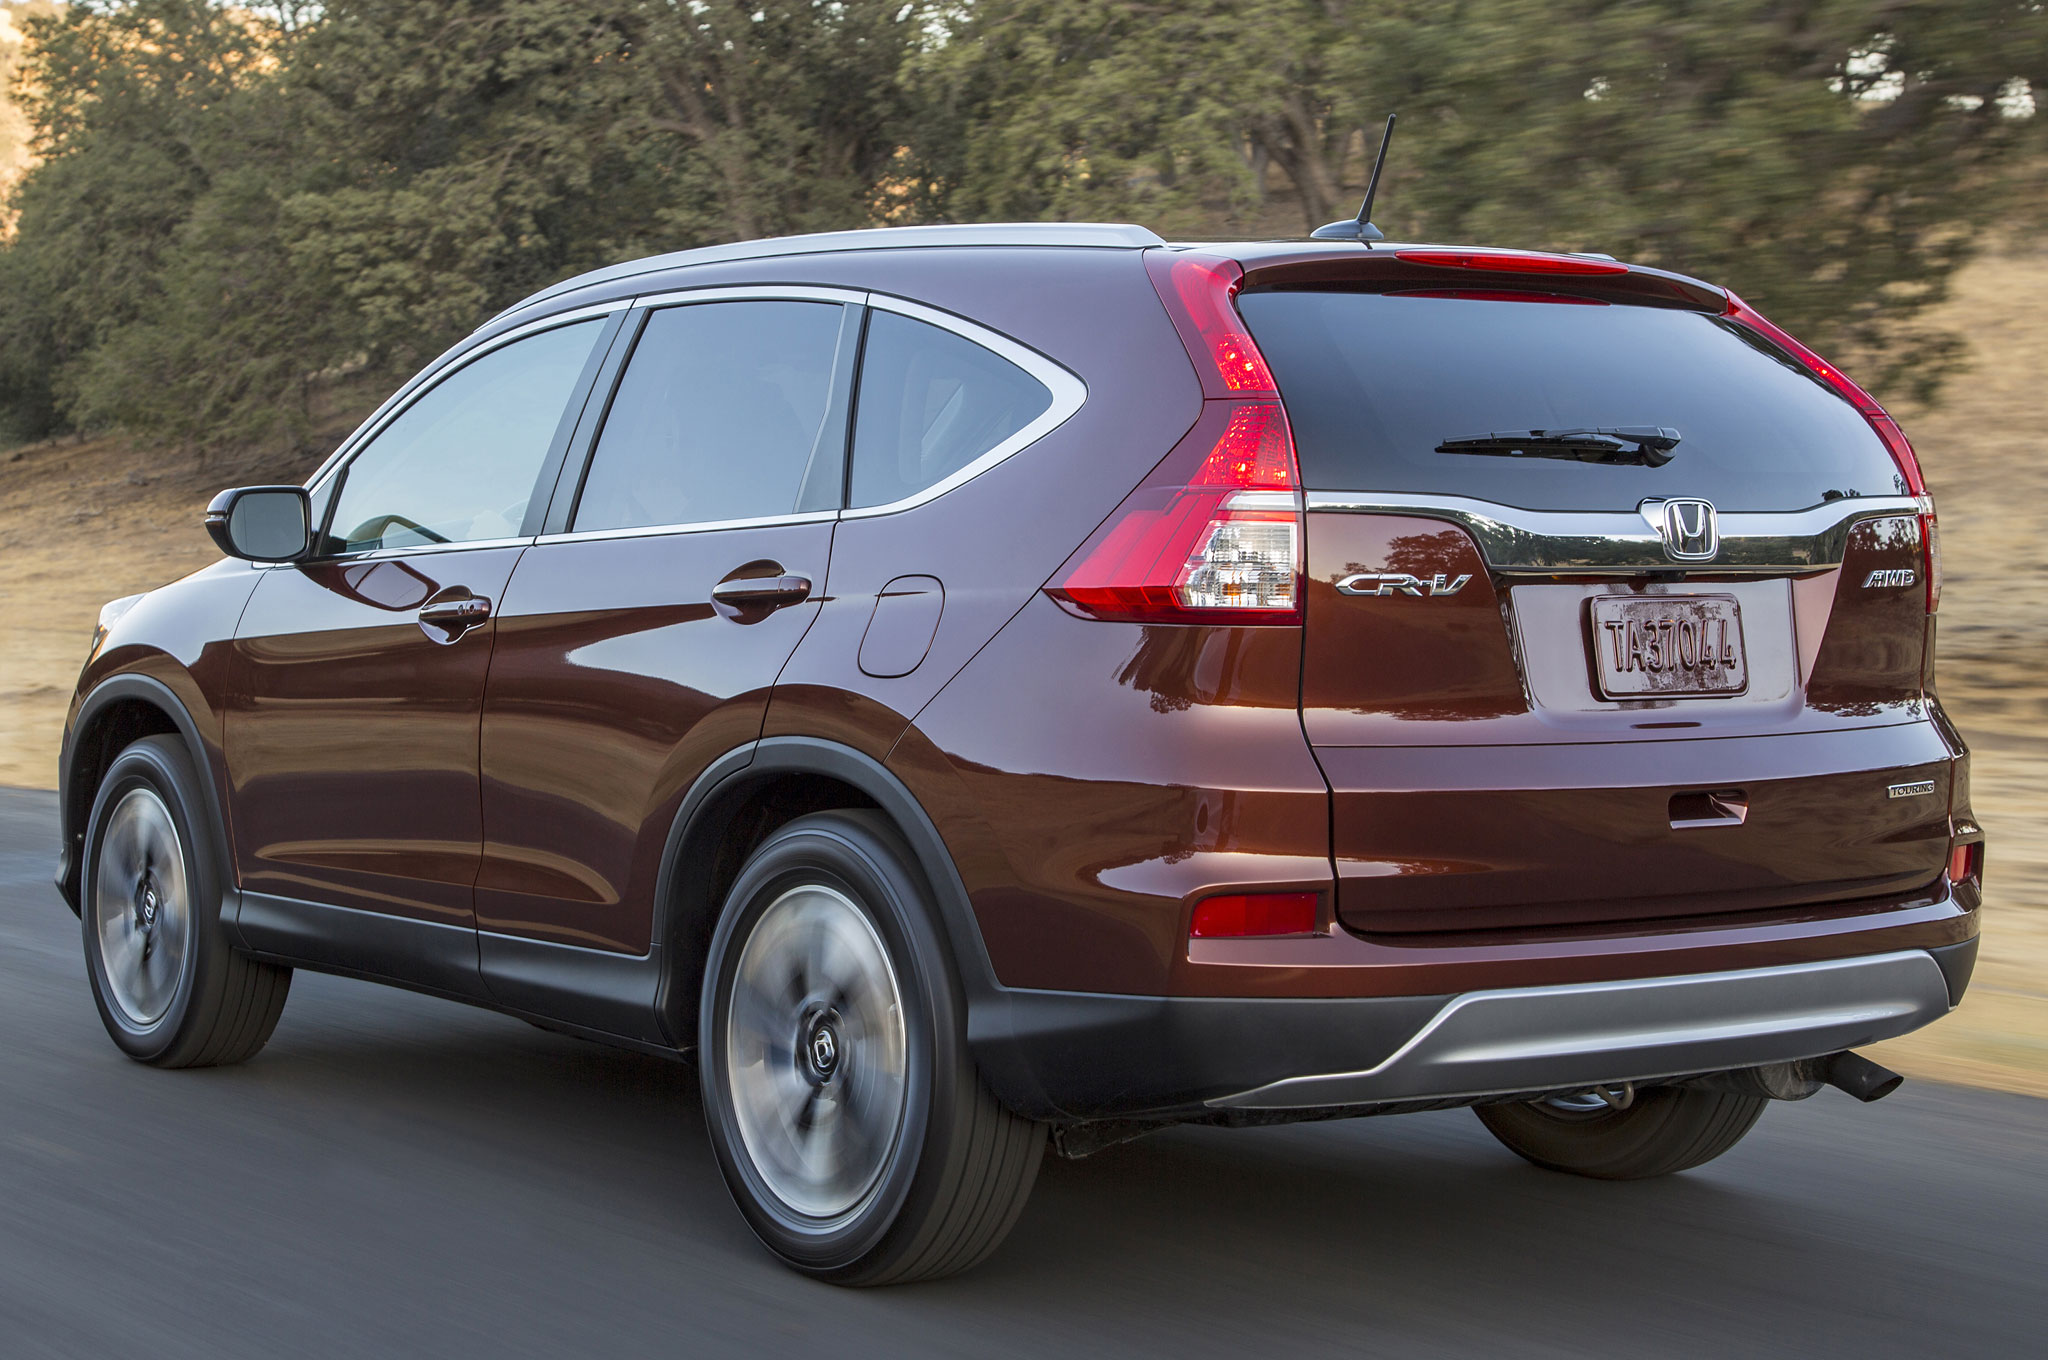 2015 Honda Cr V Refreshed With New Engine Improved Mpg Show More